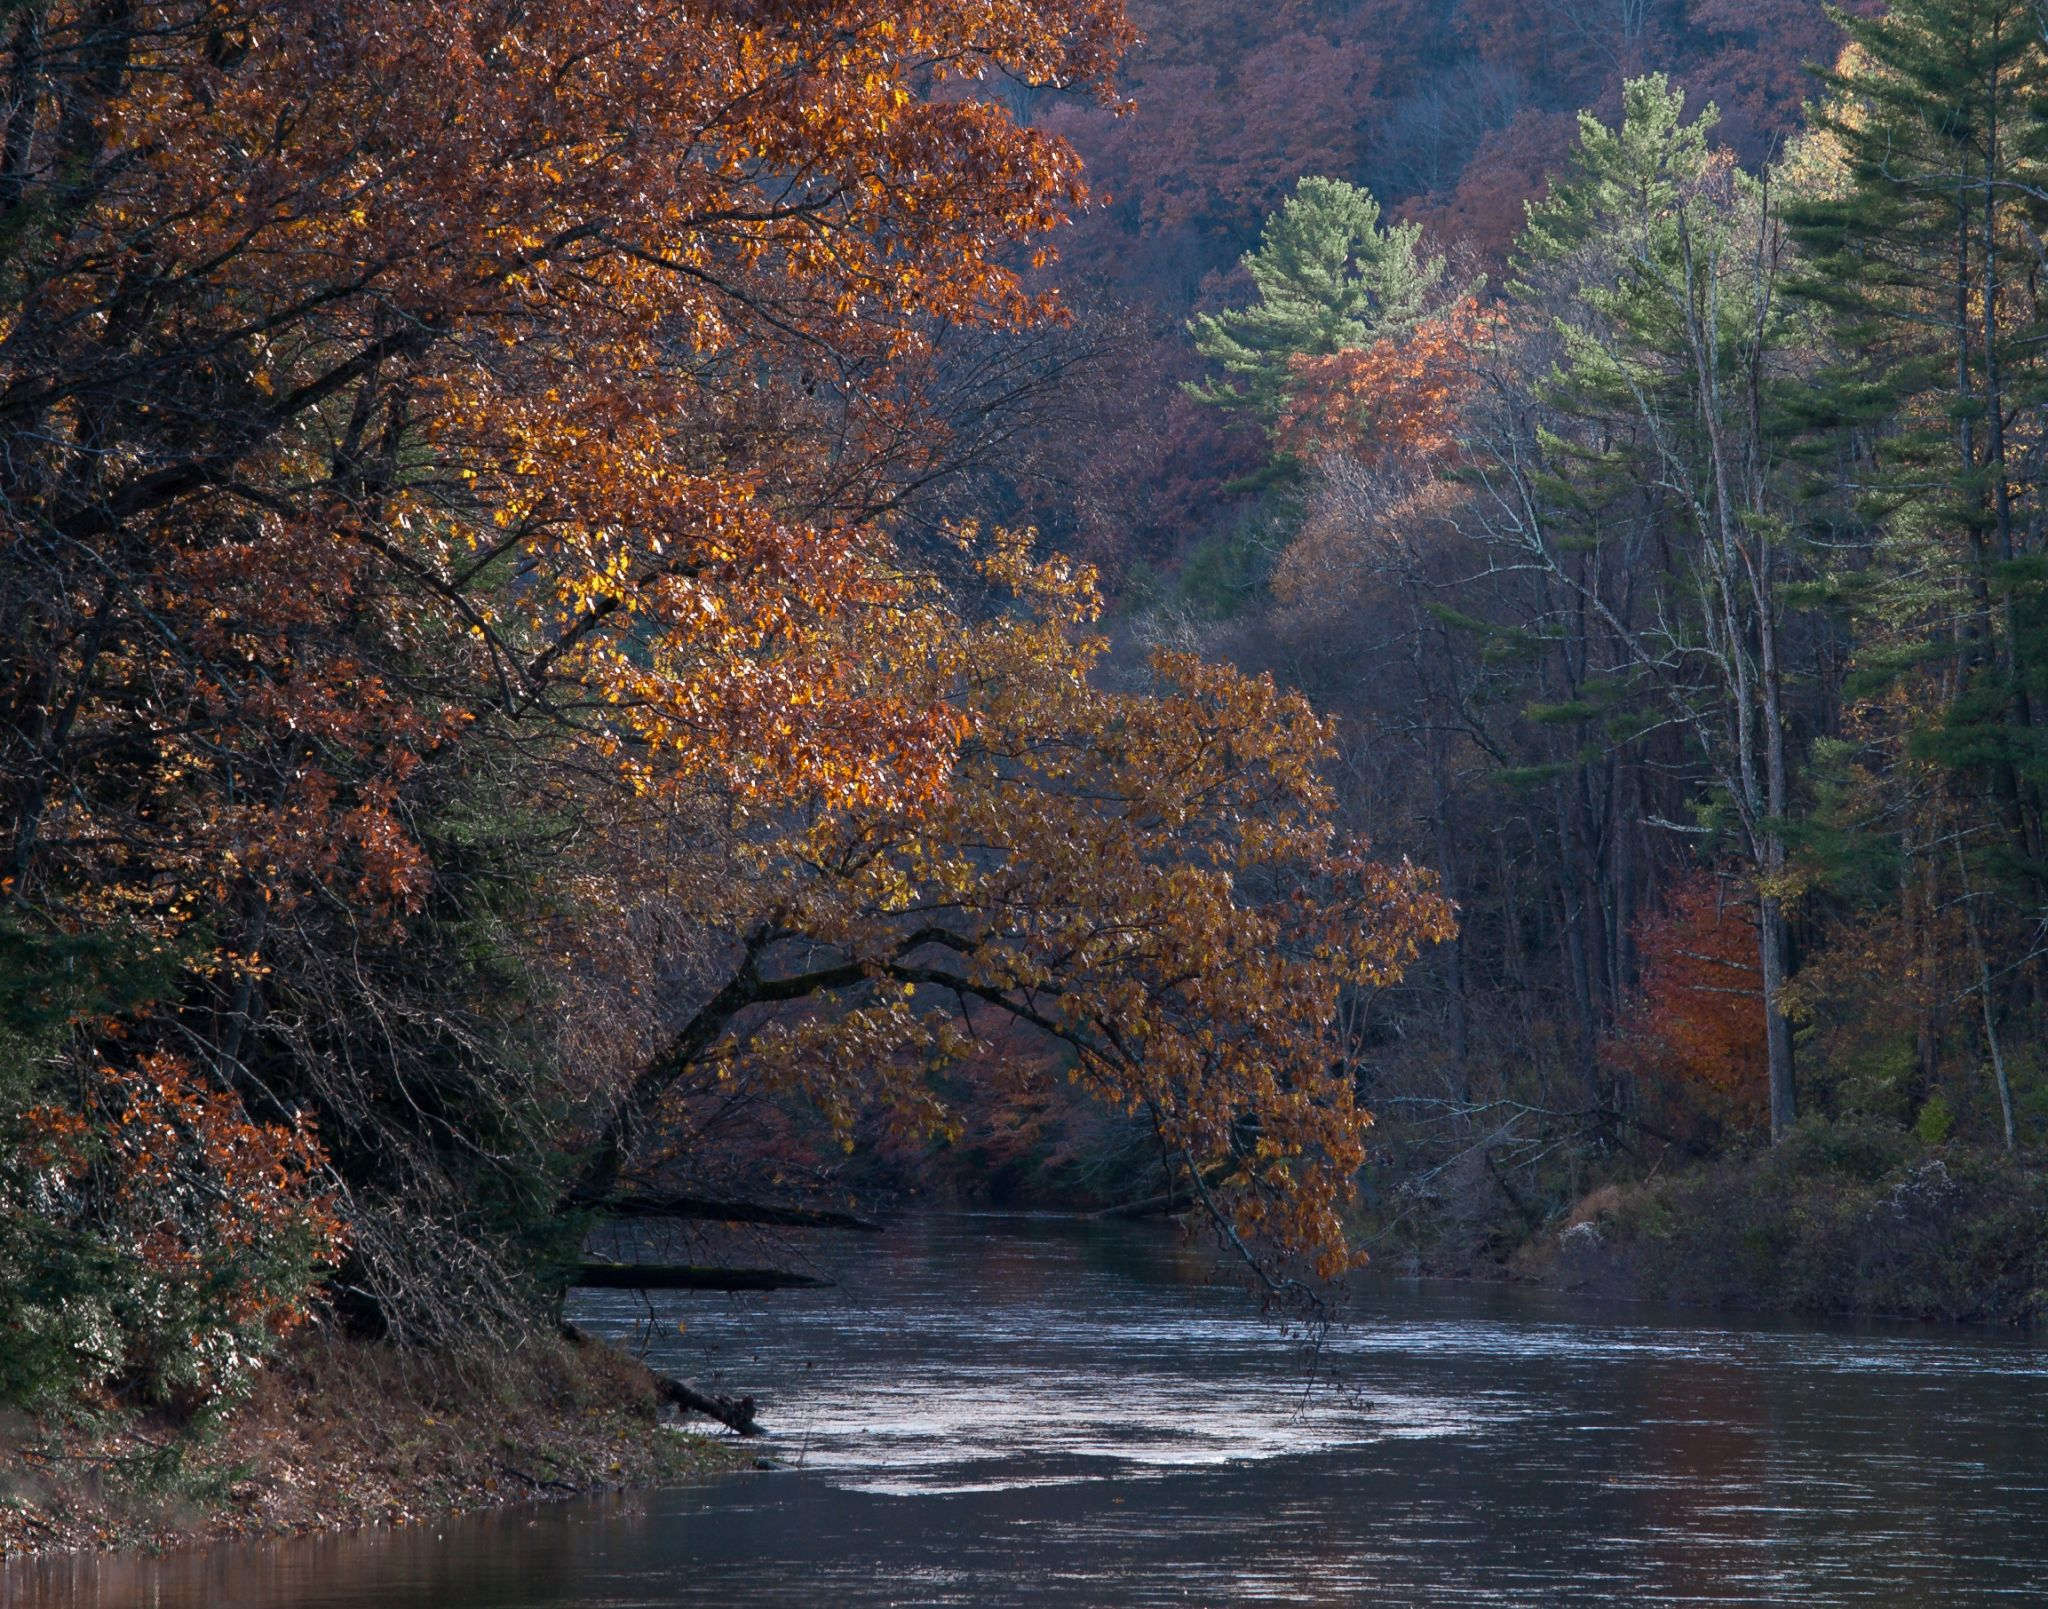 Clarion River near Clear Creek, USA